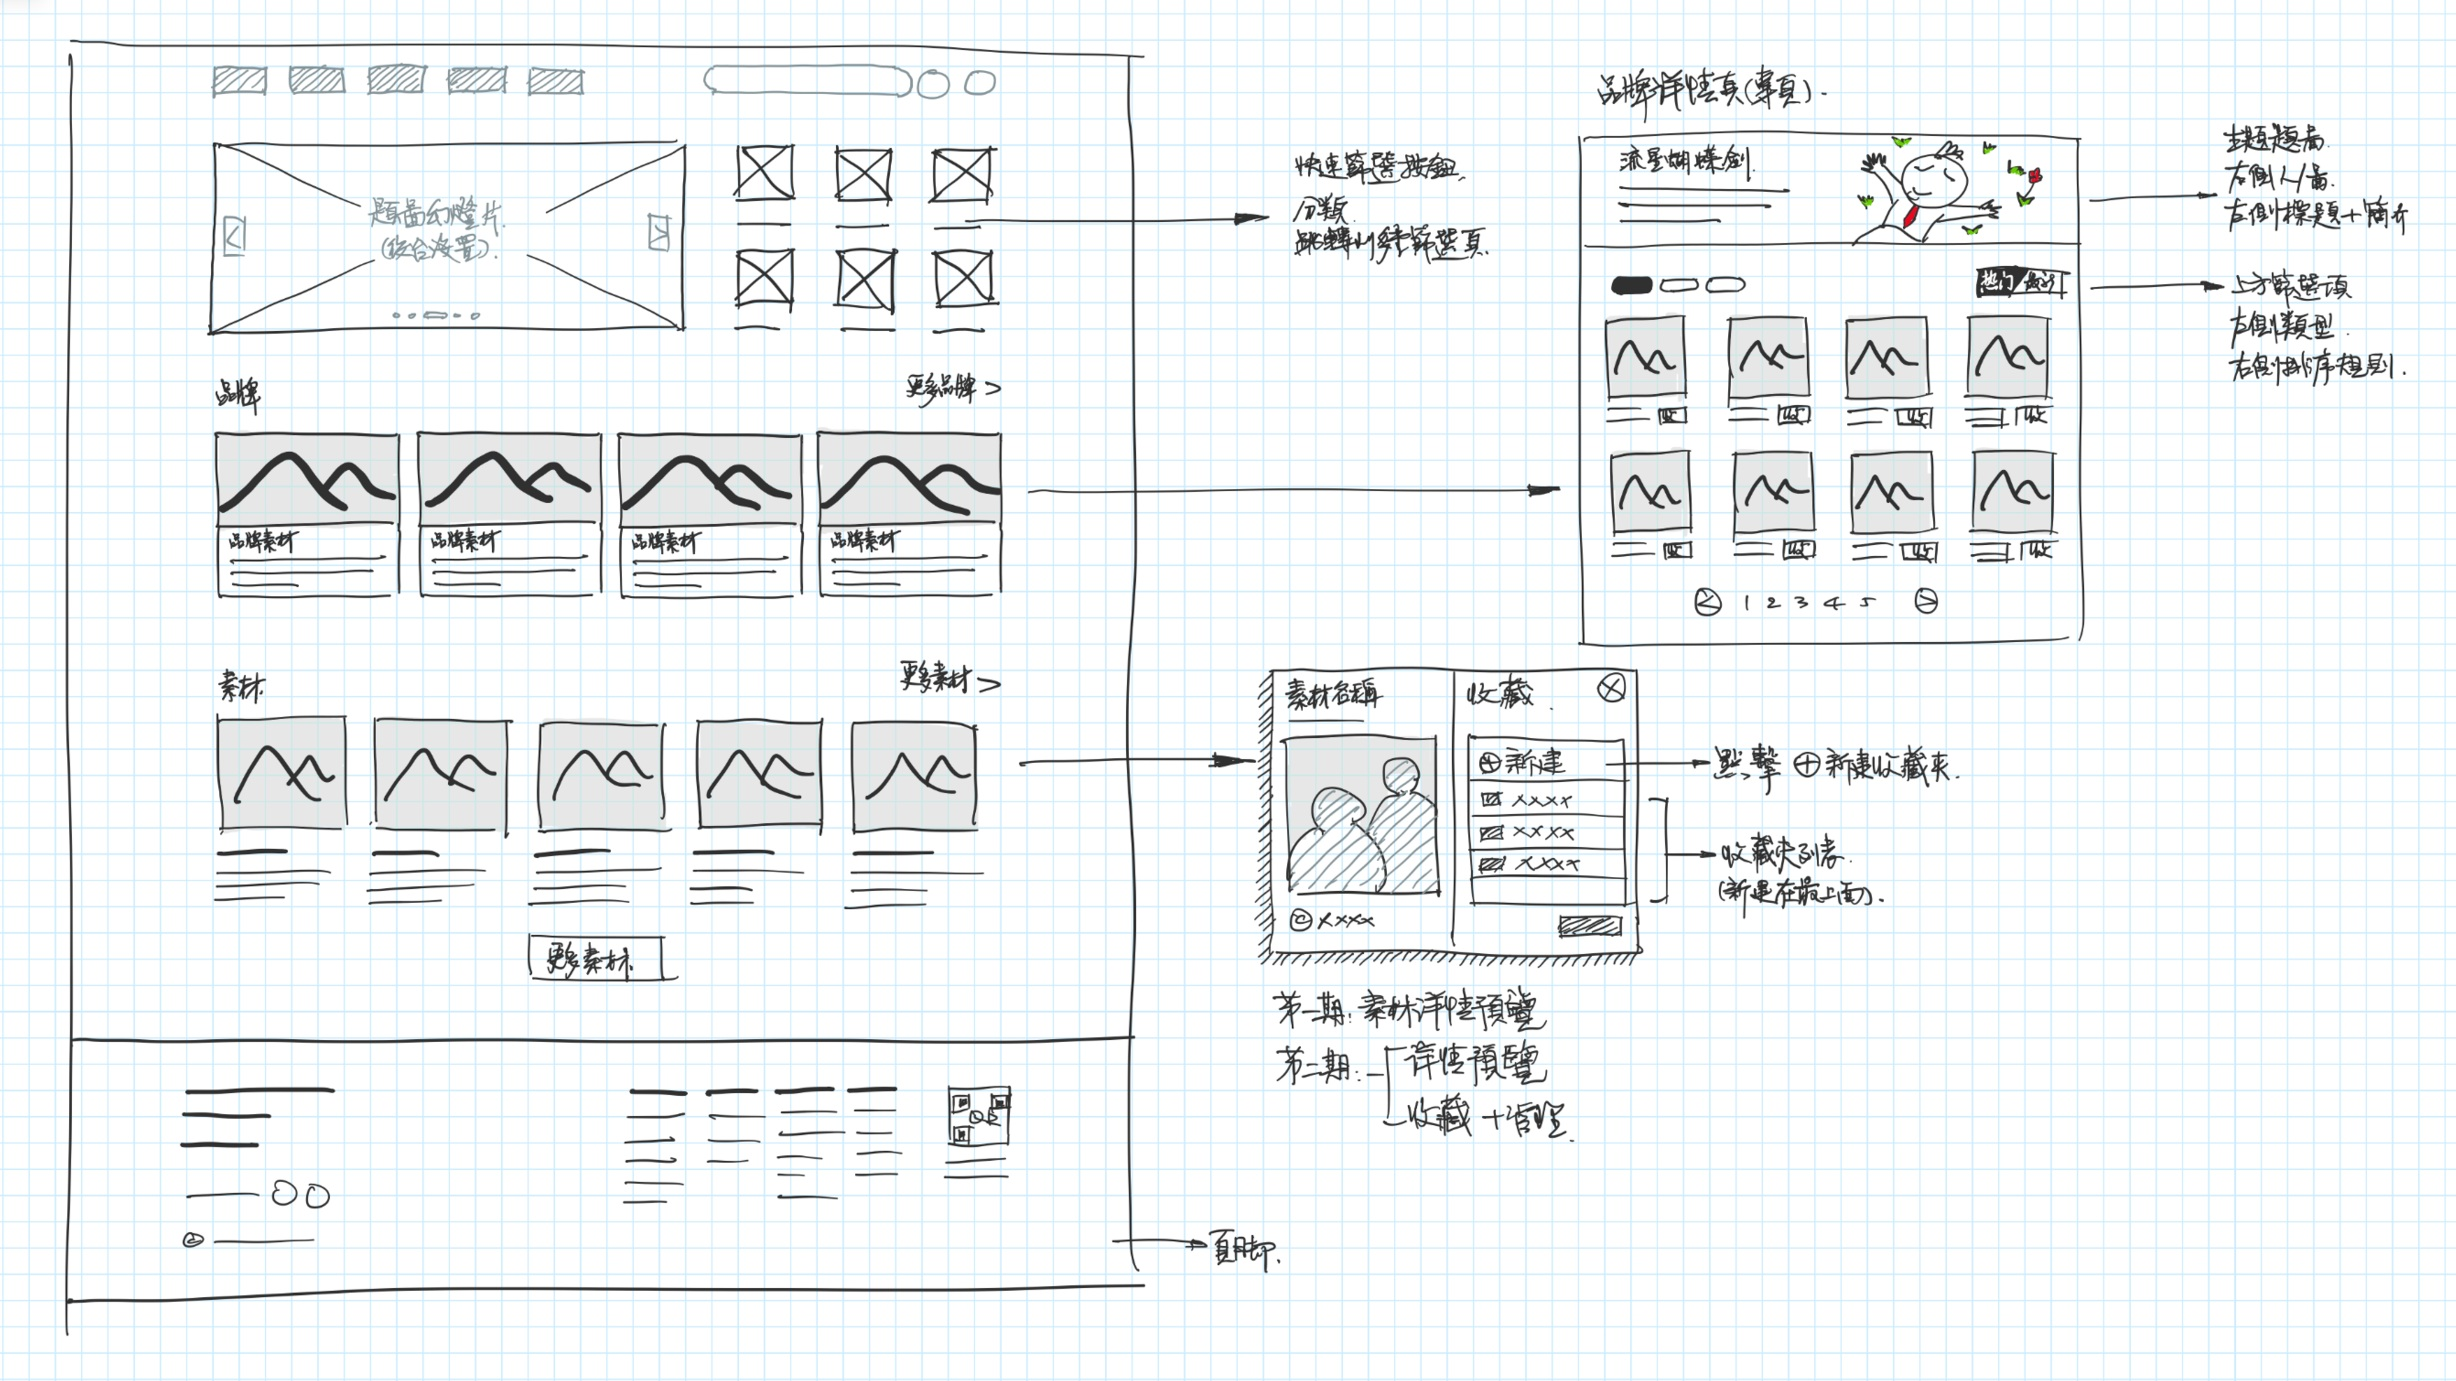 Figure 4: The wireframe sketch features the Sprite Center Page, Branded Sprite Page, and other details